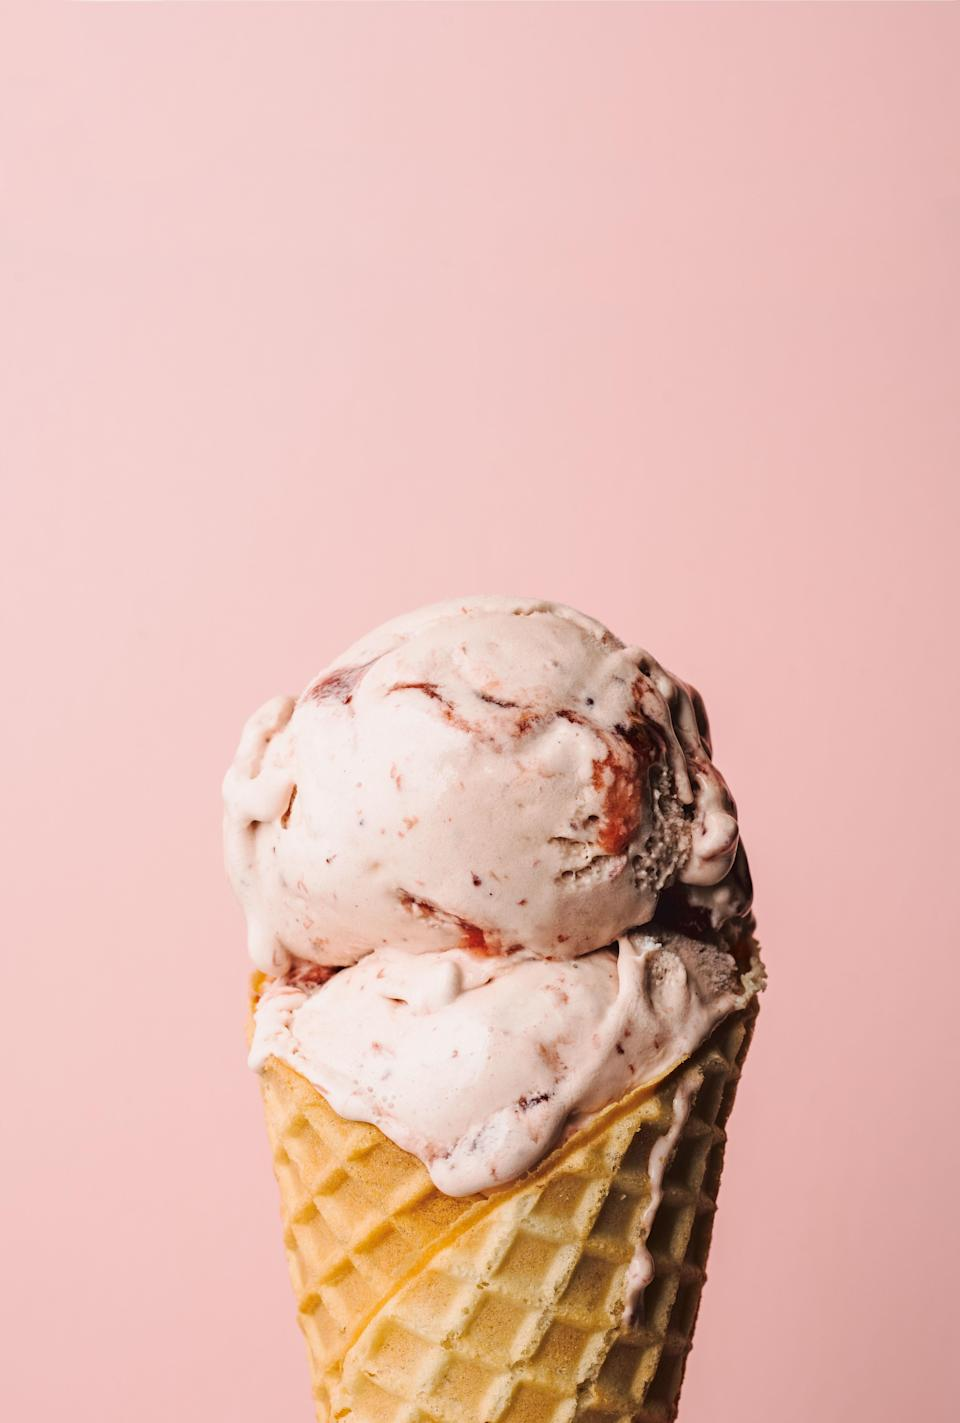 "This recipe takes sweet, rich strawberry ice cream up a notch with honey balsamic vinegar, which adds some tang, and finely ground black pepper, which brings a little spice. <a href=""https://www.epicurious.com/recipes/food/views/strawberry-honey-balsamic-with-black-pepper-ice-cream-salt-straw?mbid=synd_yahoo_rss"" rel=""nofollow noopener"" target=""_blank"" data-ylk=""slk:See recipe."" class=""link rapid-noclick-resp"">See recipe.</a>"